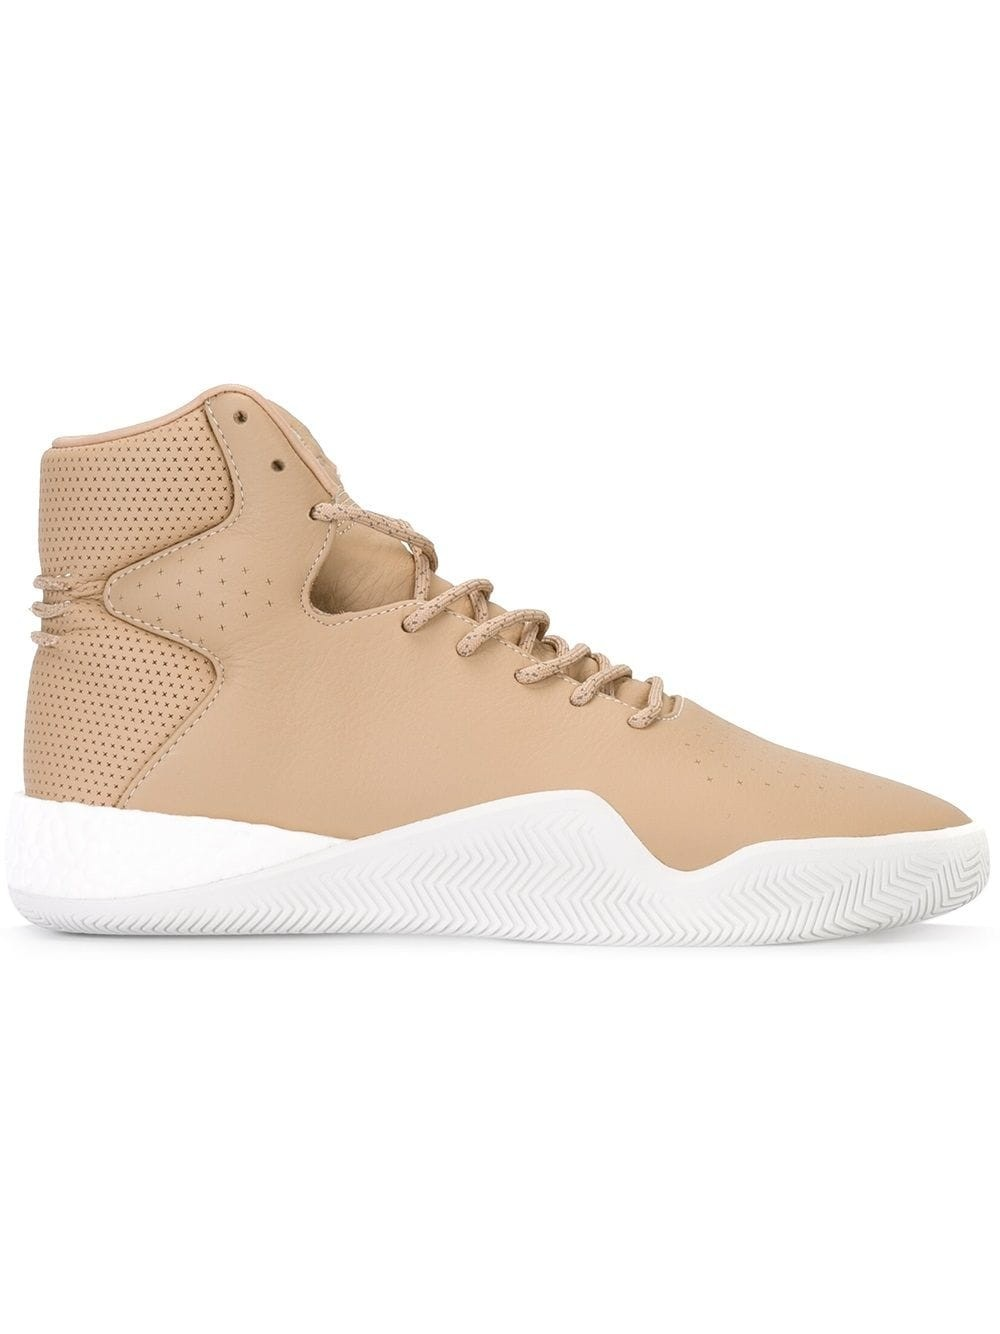 Adidas Originals Tubular Instinct Boost | Marron | Sneakers | BB8400